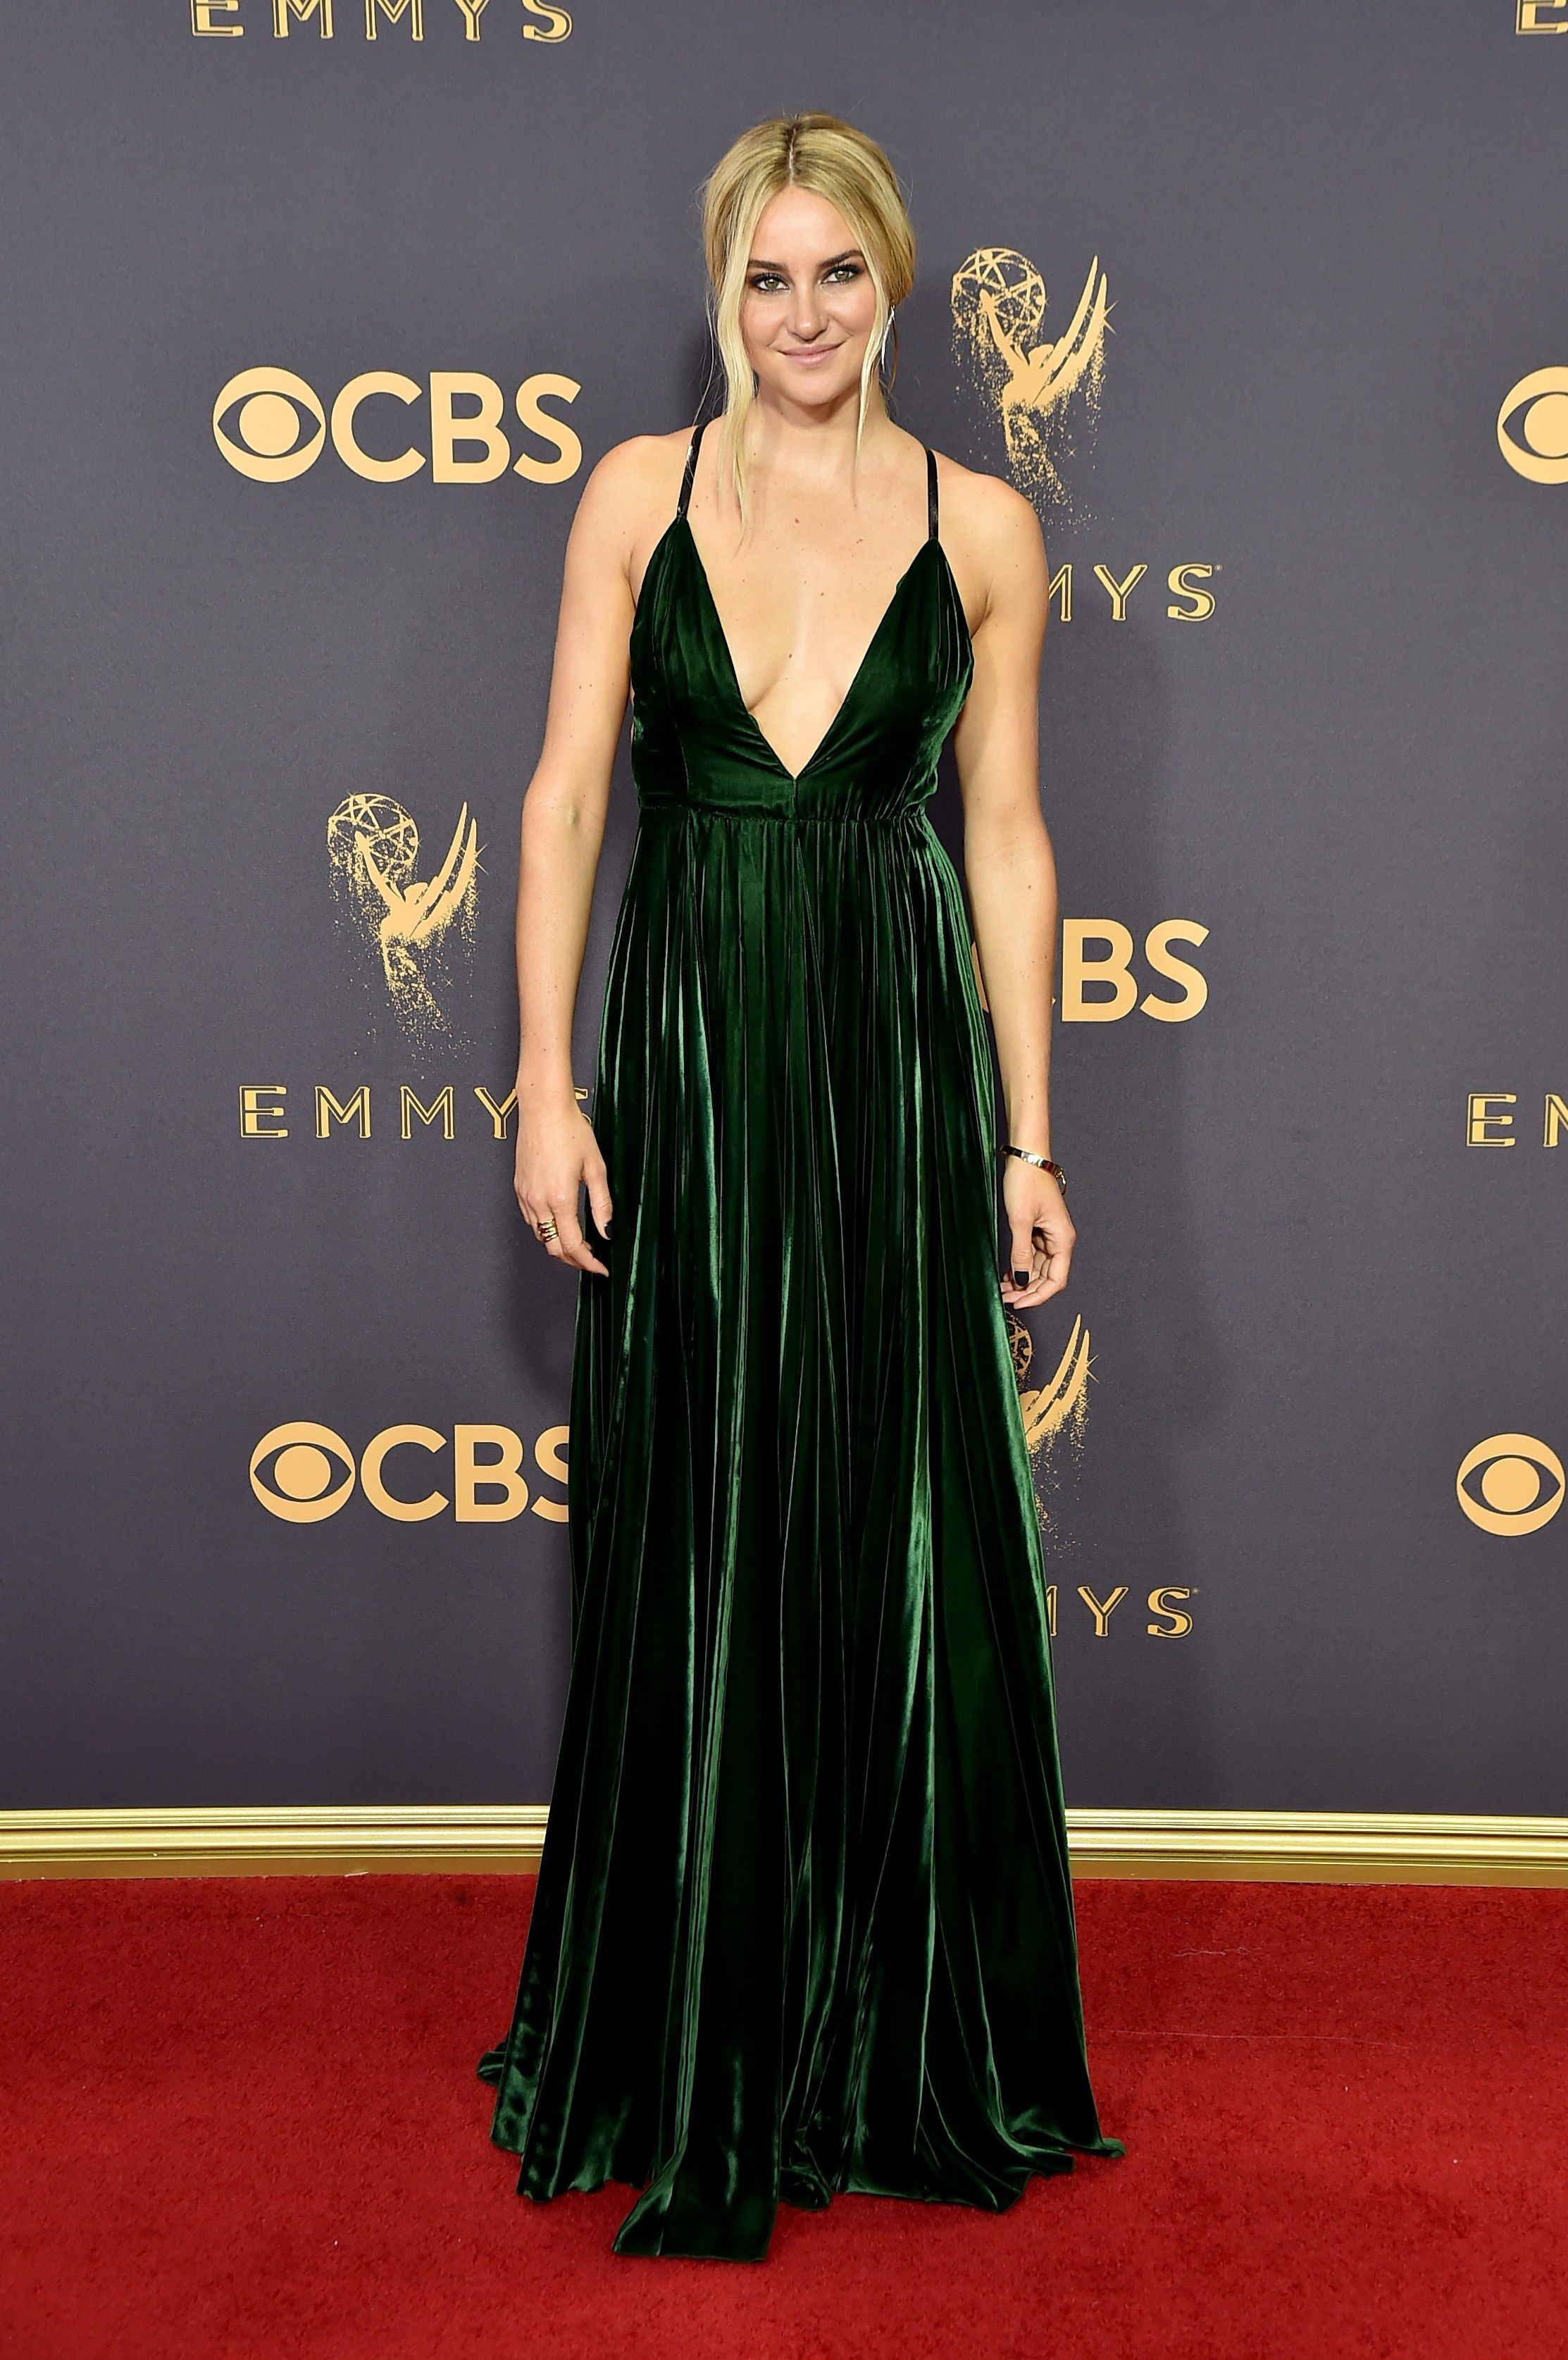 Emmy dress pictures 2018